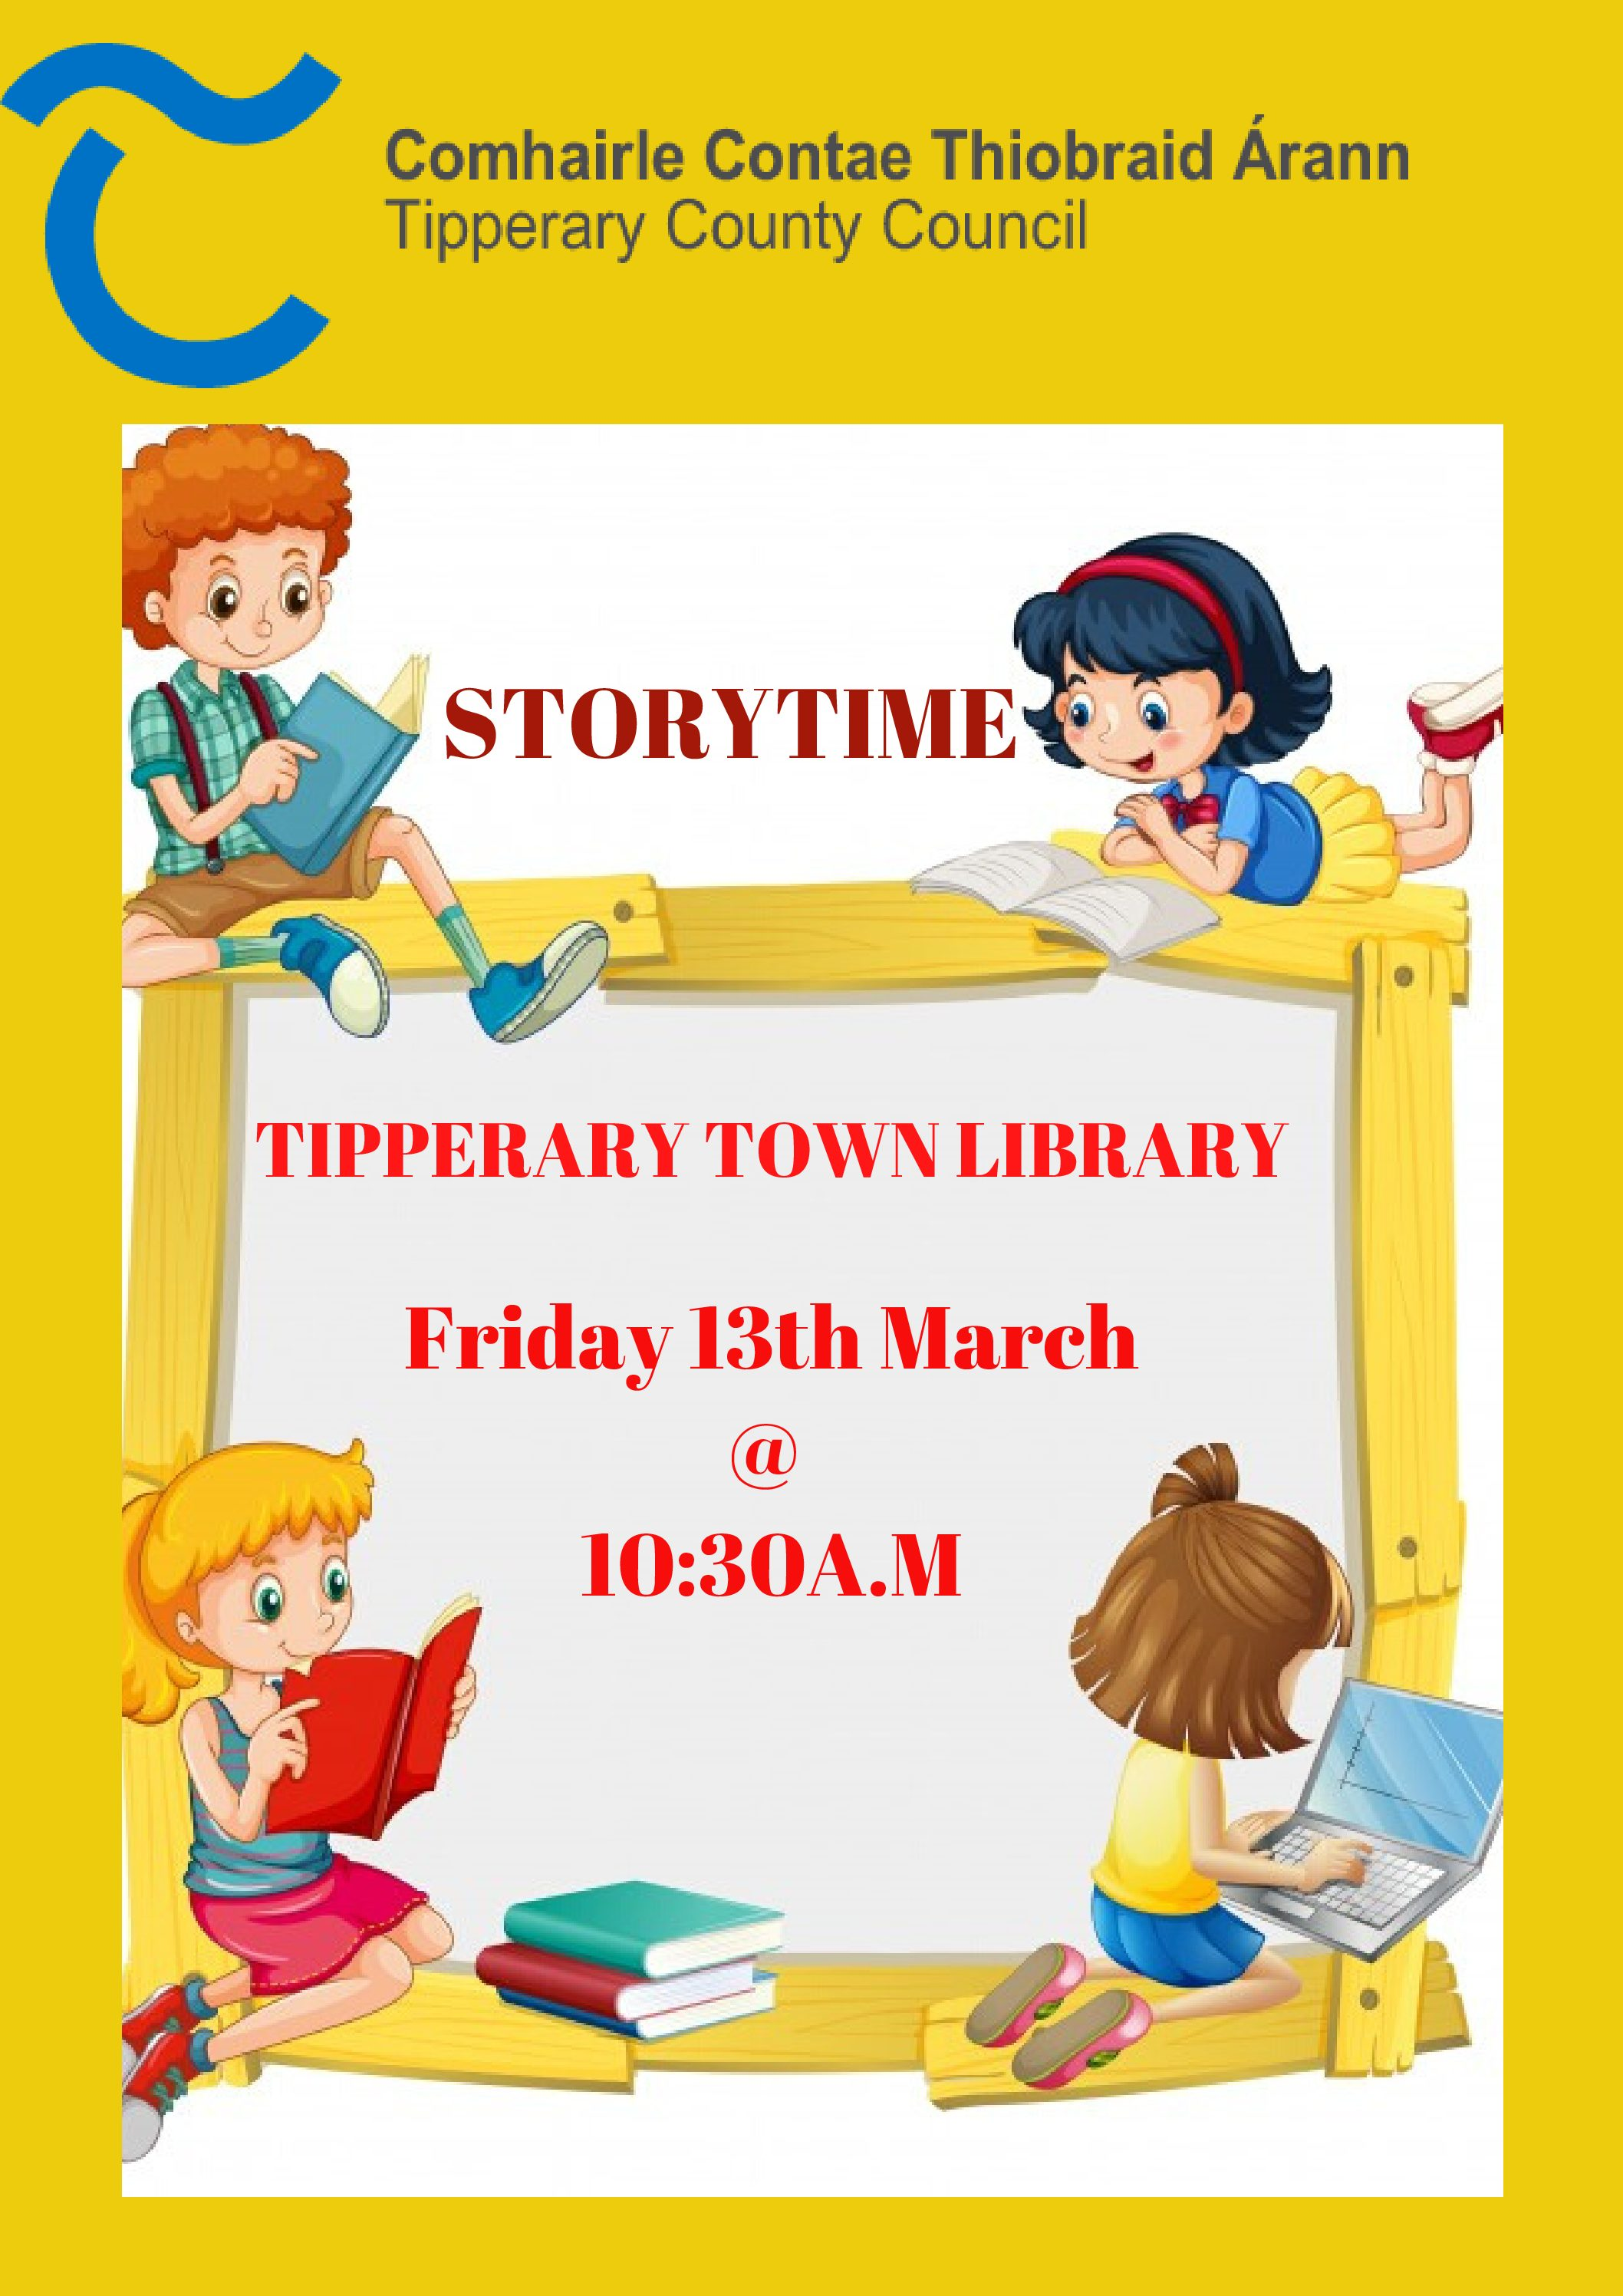 Tipperary Town Library Storytime @ 10.30a.m Friday13th March